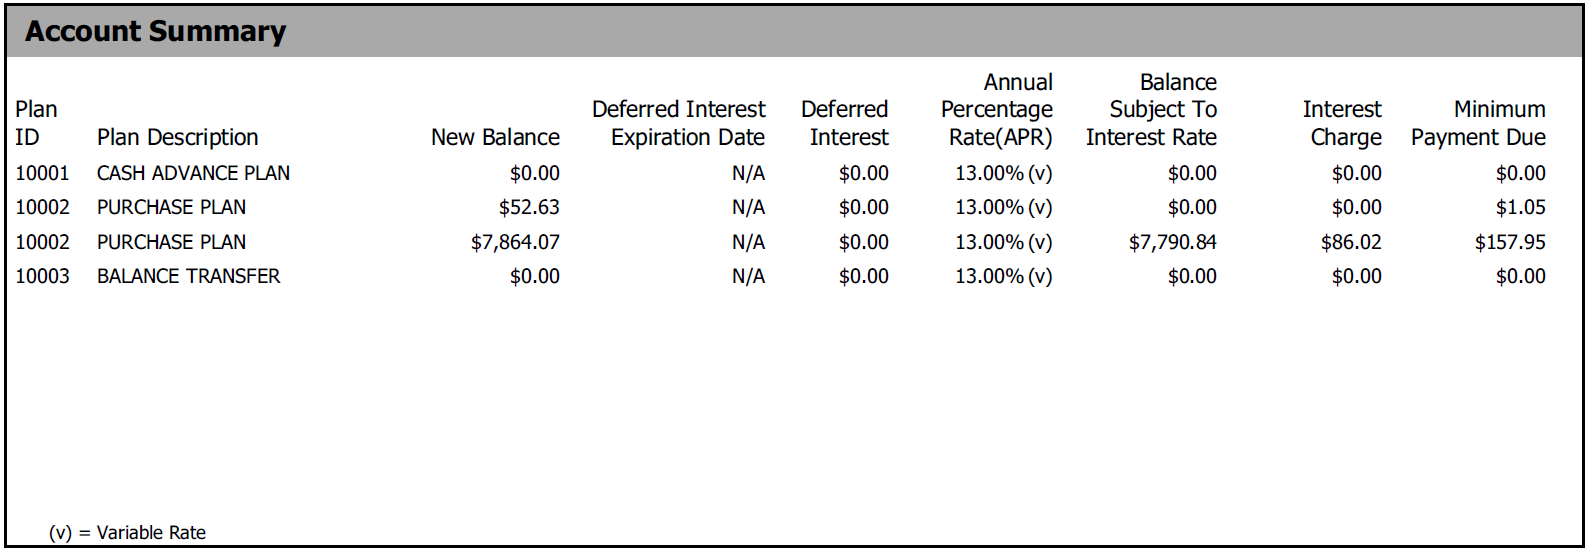 Image of Account Summary portion on NWCU credit card statement